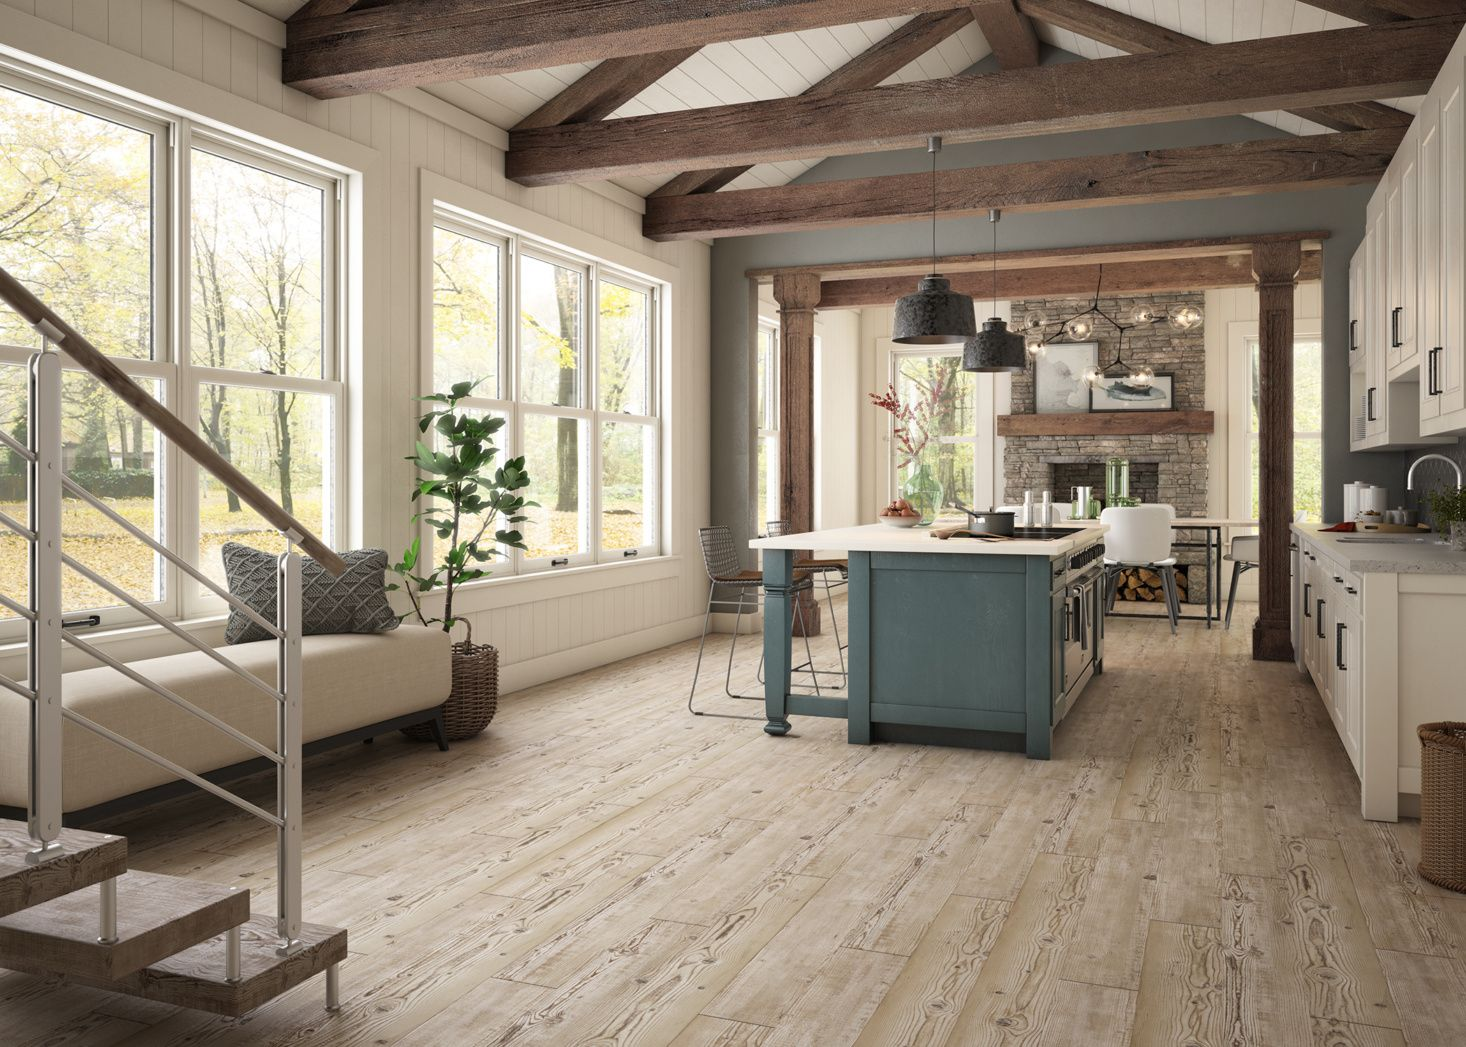 108 reference of Flooring Hard wood engineered in 2020